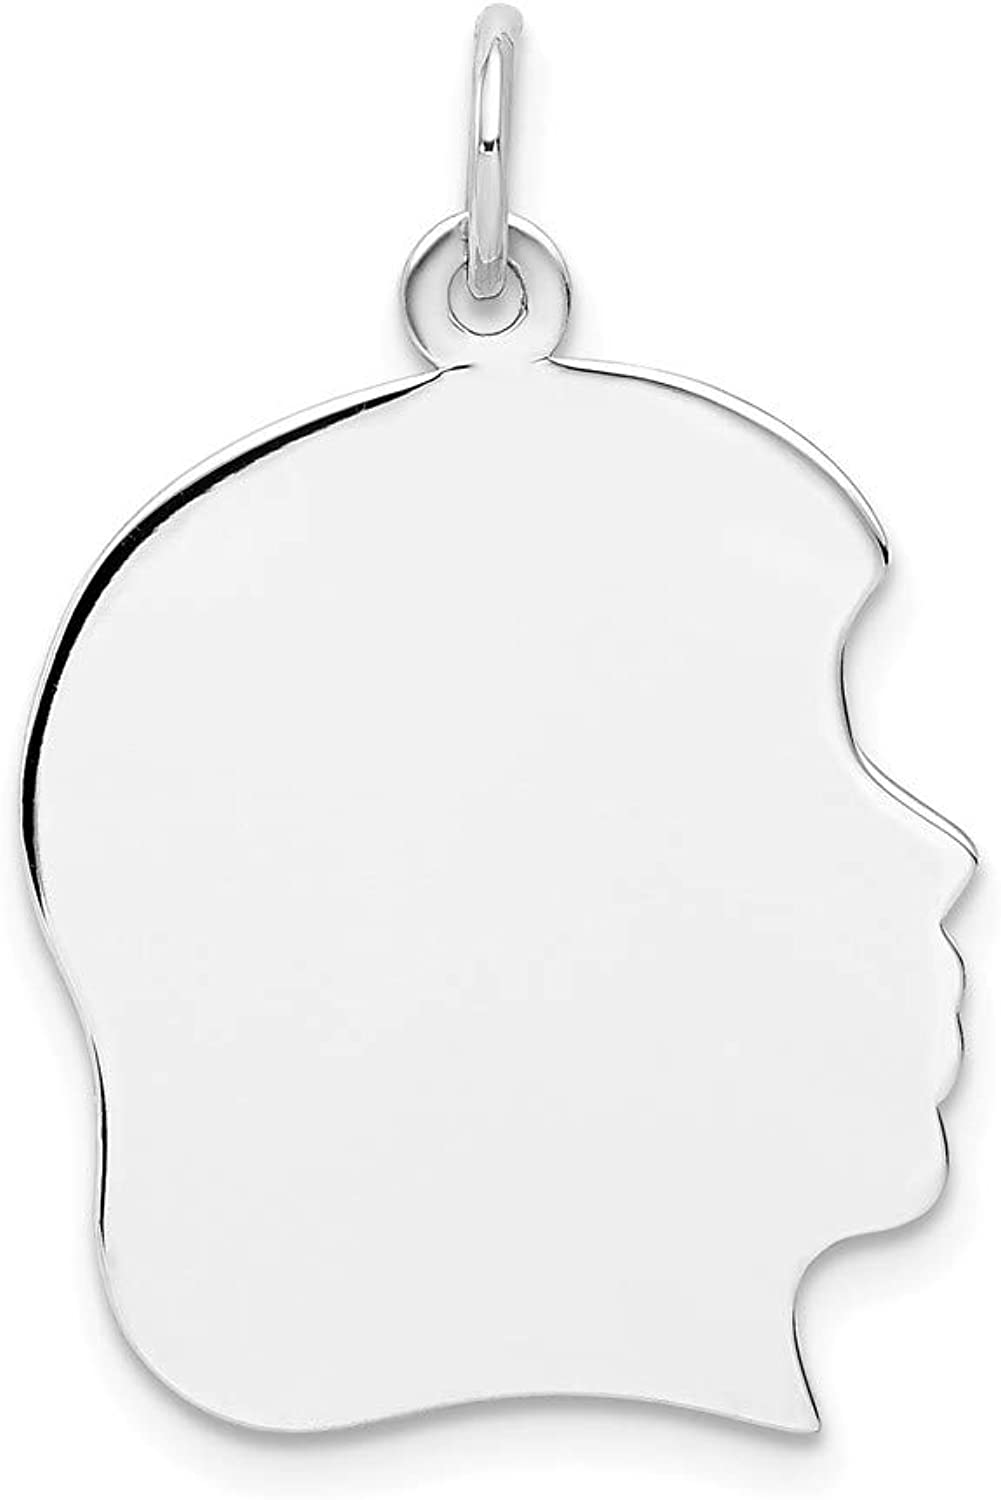 Beautiful White gold 14K 14k White gold Plain Large Facing Right Engravable Girl Charm